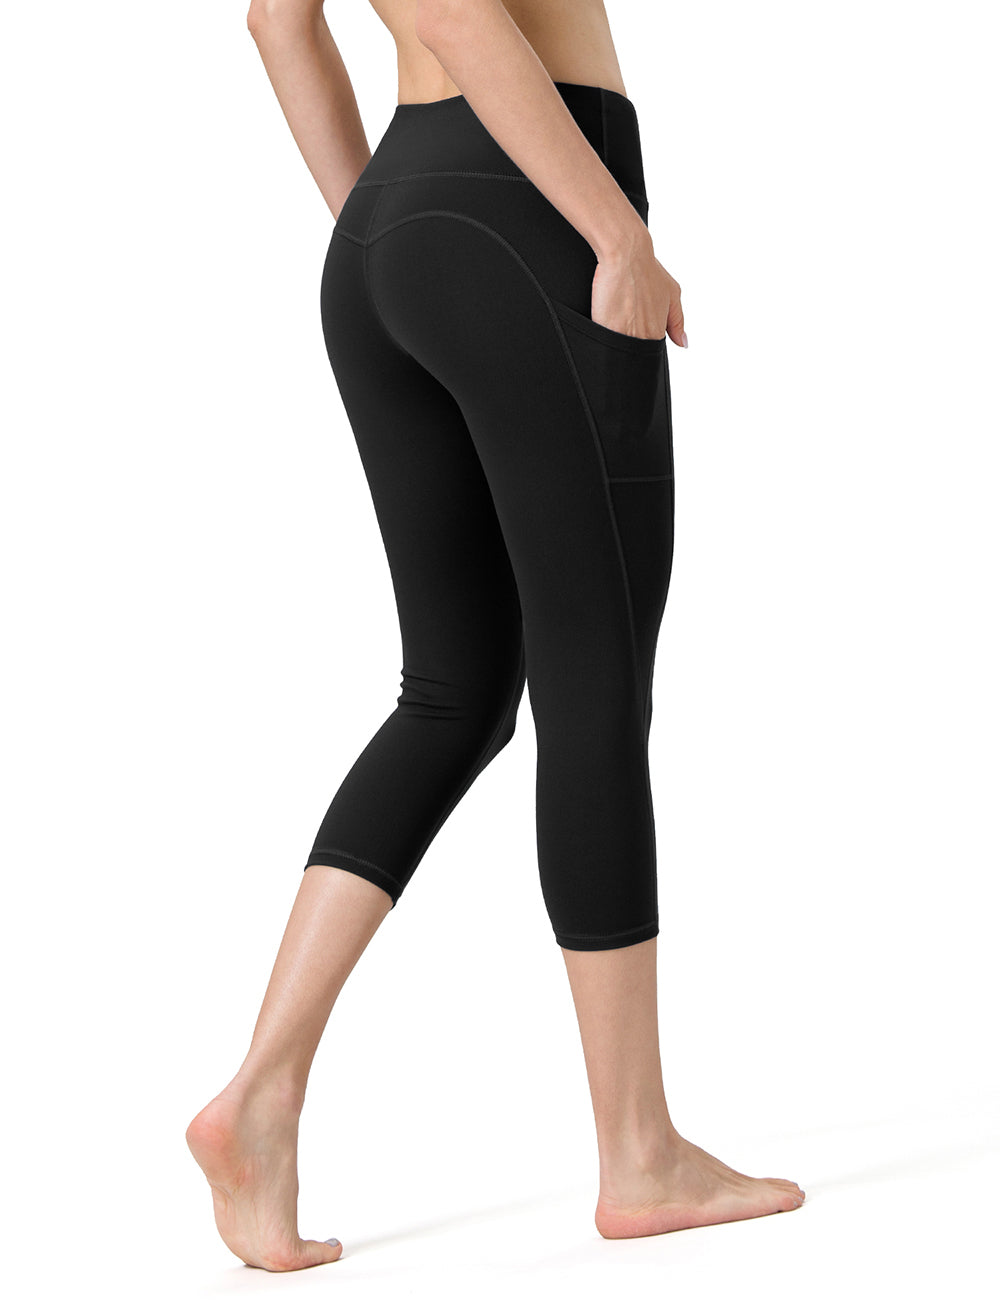 Cropped yoga pants - ALONGFIT